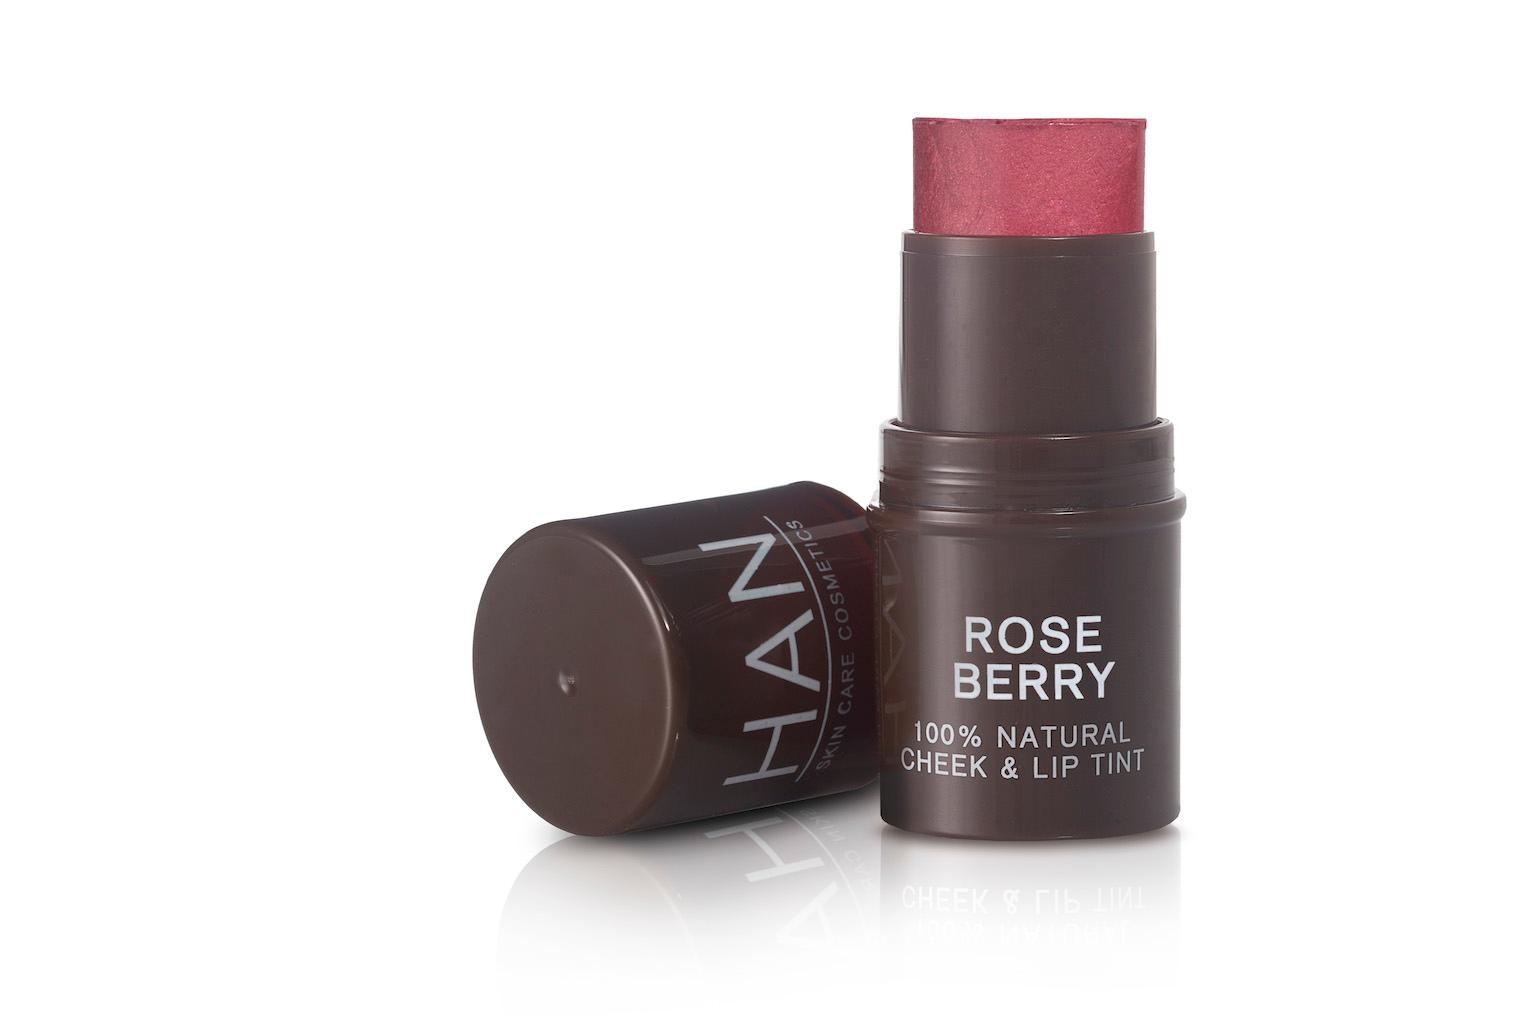 HAN Skin Care Cosmetics Cheek & Lip Tint - Rose Berry